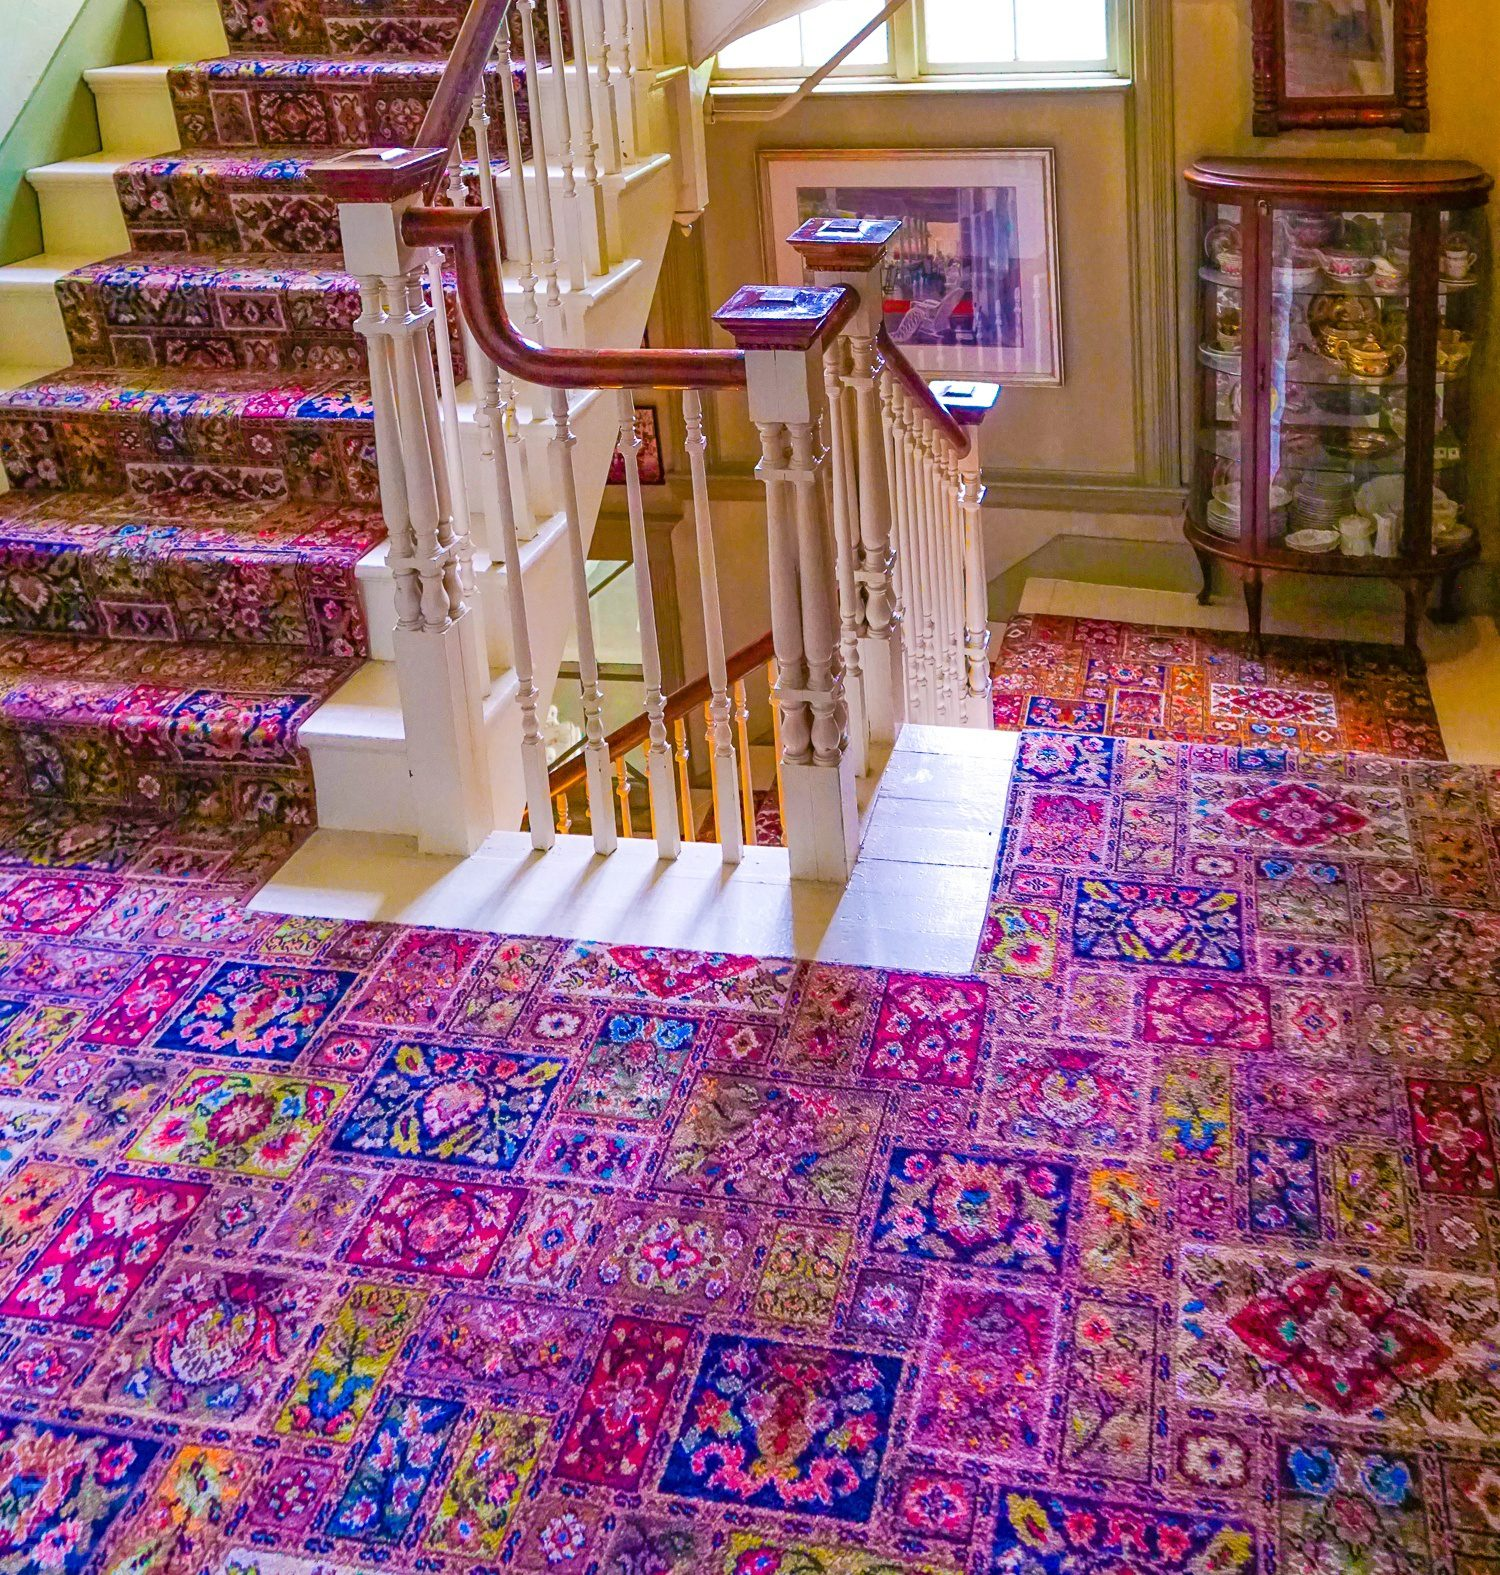 The historic hotel carpets in the Red Lion Inn, plus colonial china displays.